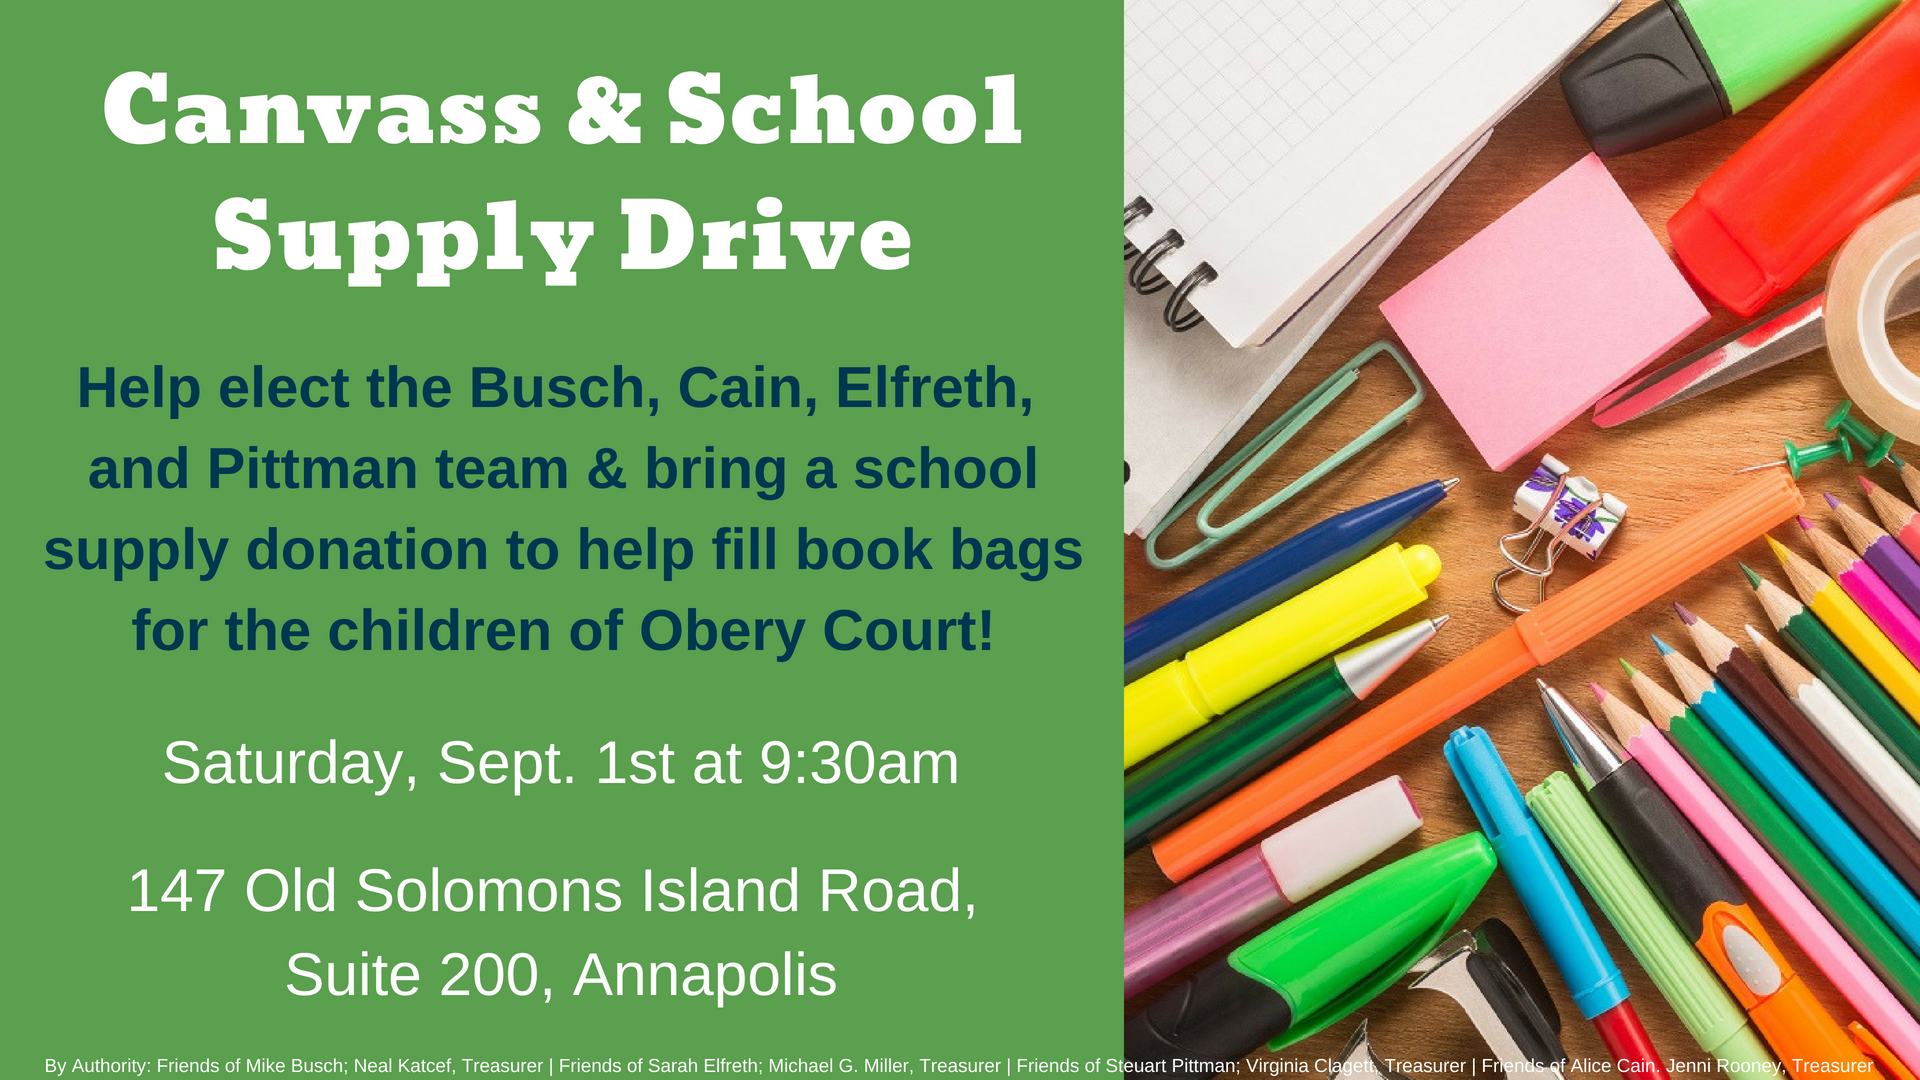 Canvass & School Supply Drive.png